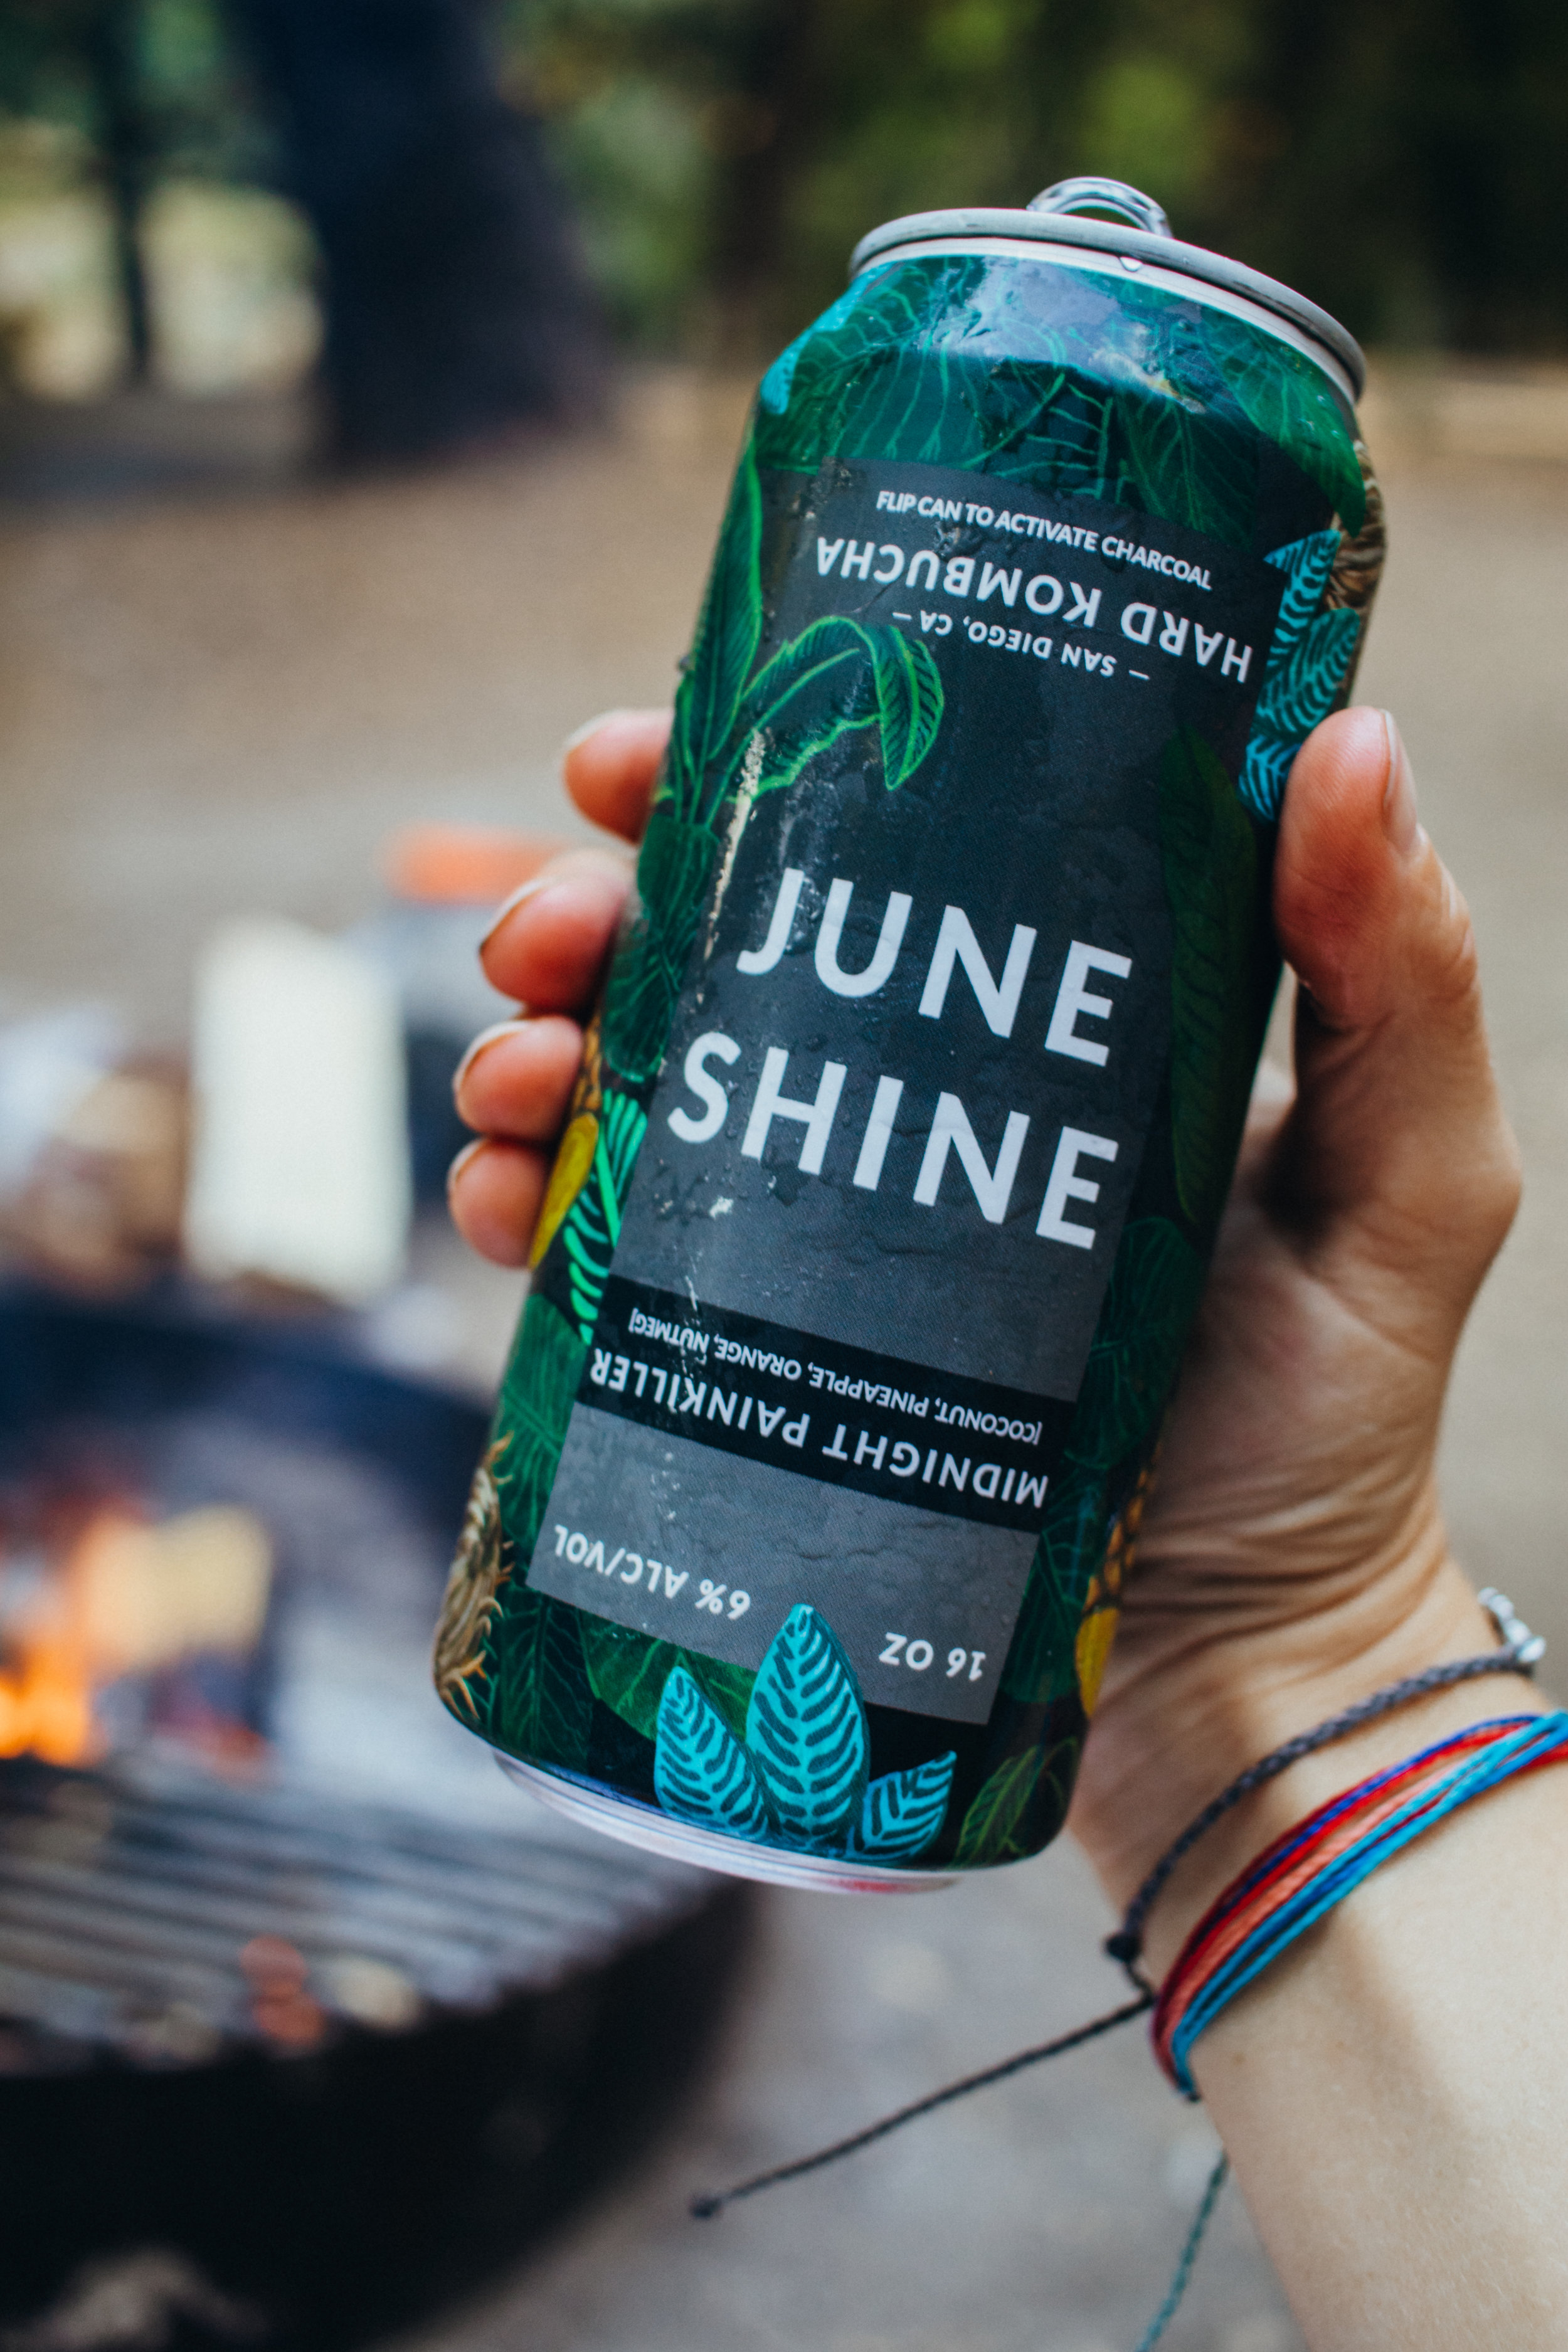 juneshine hard kombucha was one of the best parts about this trip.